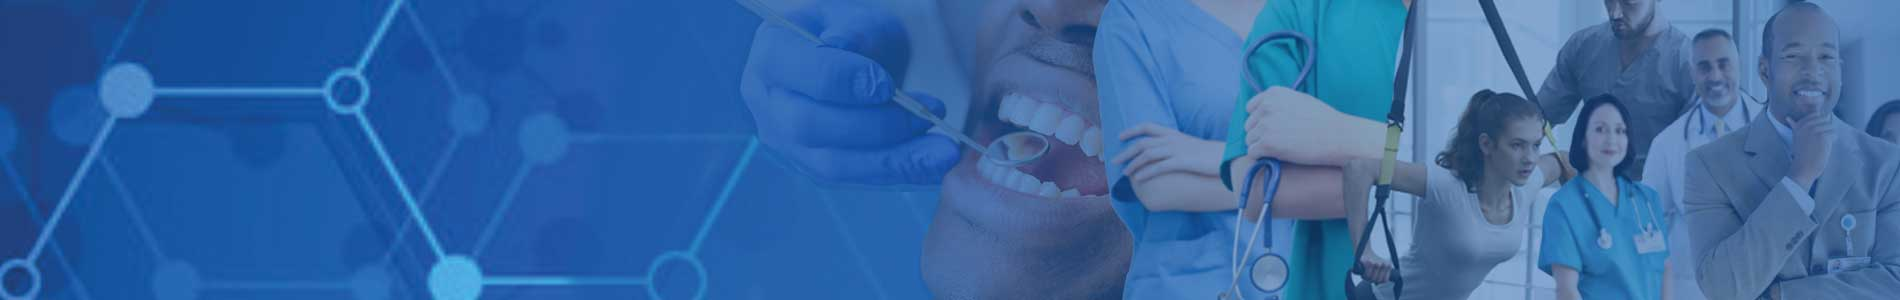 Dental Hygiene Clinic banner image